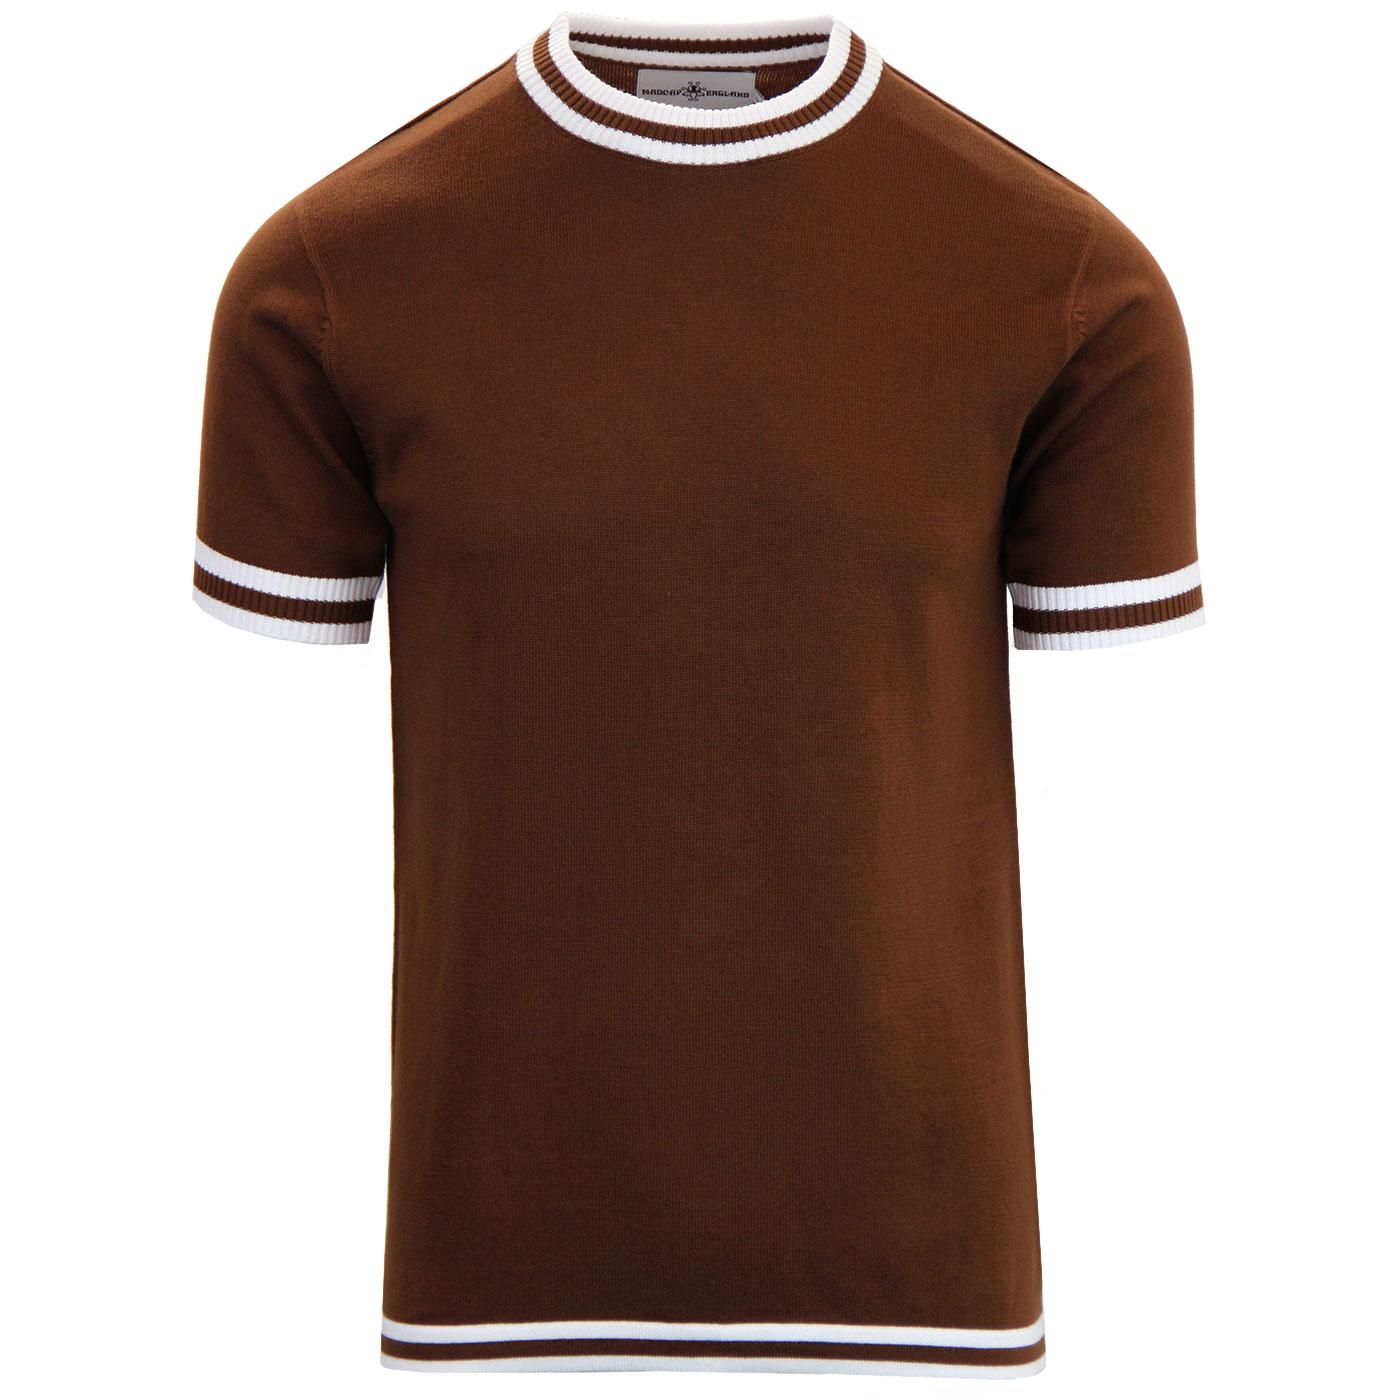 Moon MADCAP ENGLAND 60s Mod Tipped Knit Tee BISON